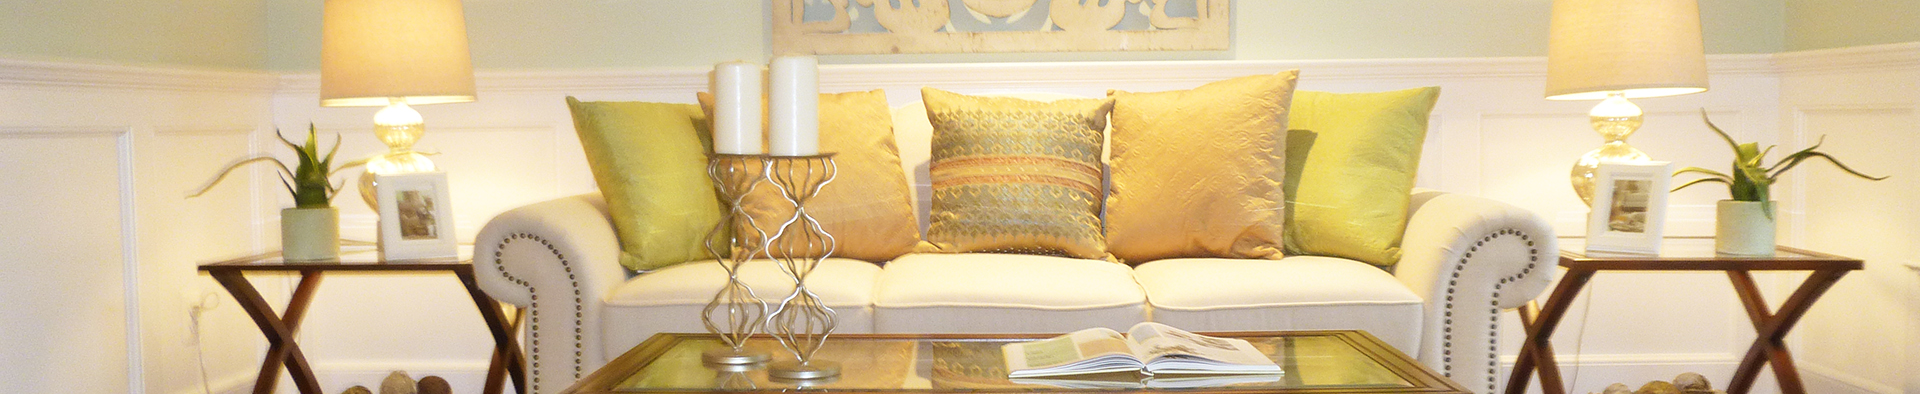 Home Premier Home Staging